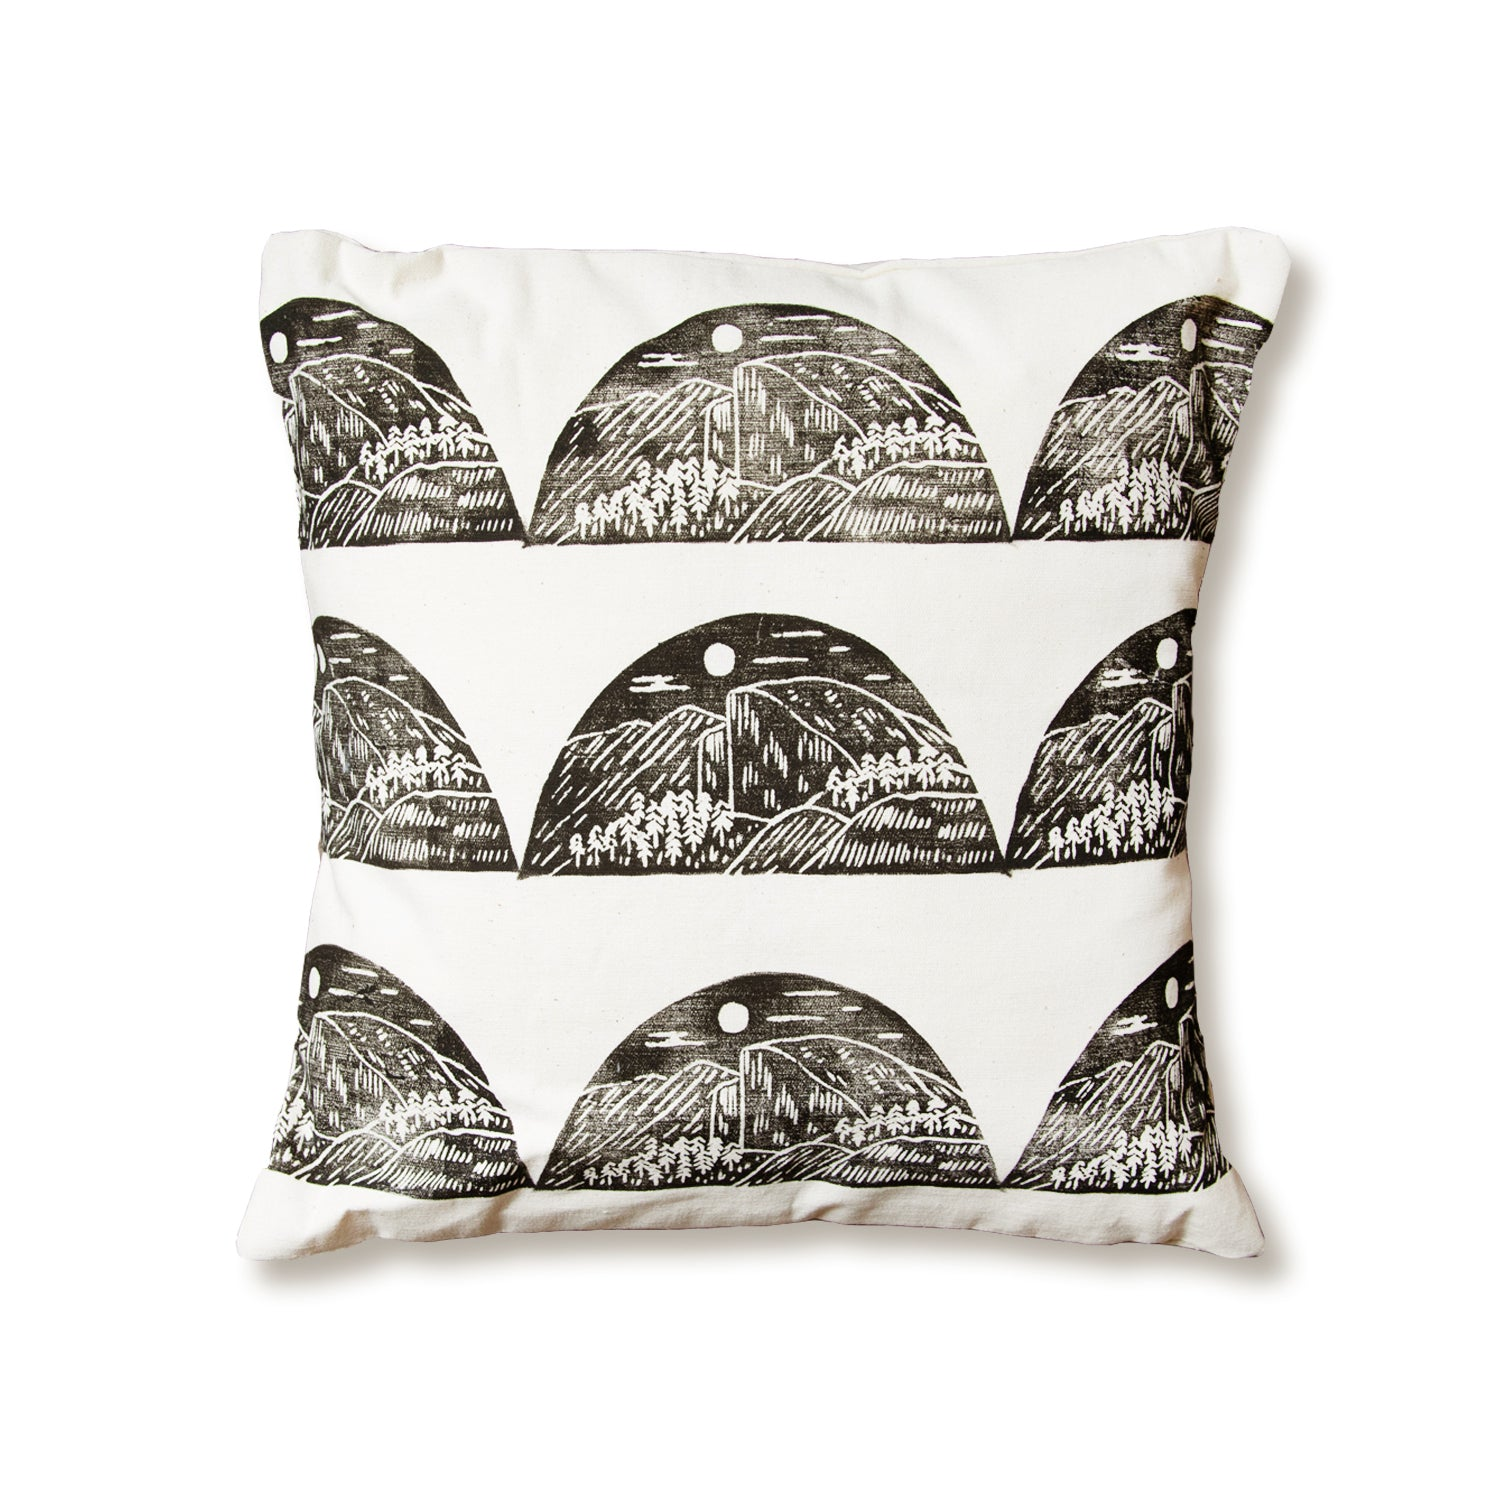 National Park Pillows